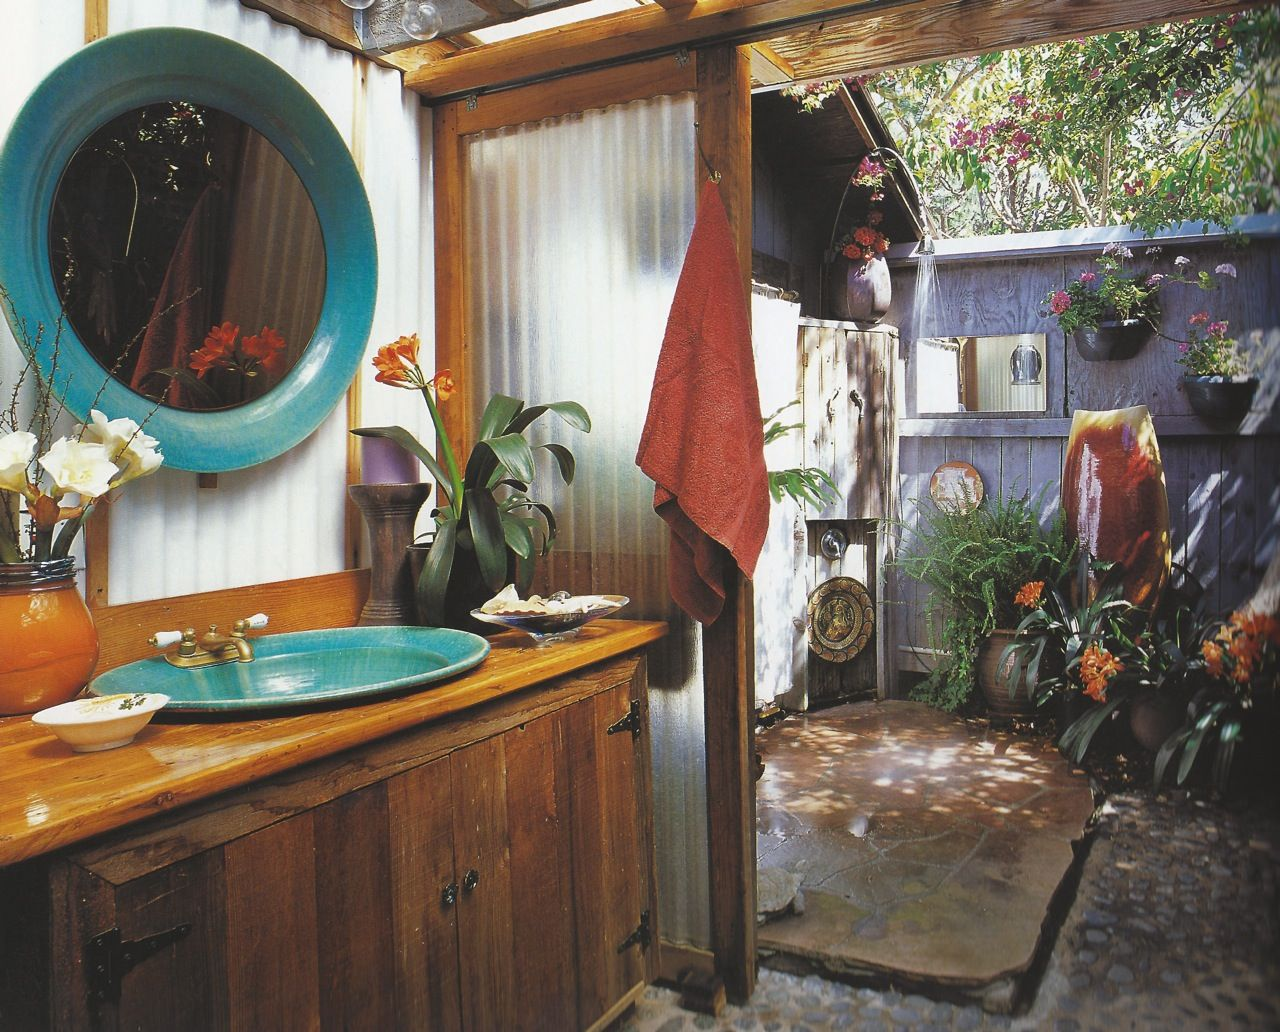 Very 1970's hippie coastal chic Malibu bathroom. This is perfection to me......so in love.